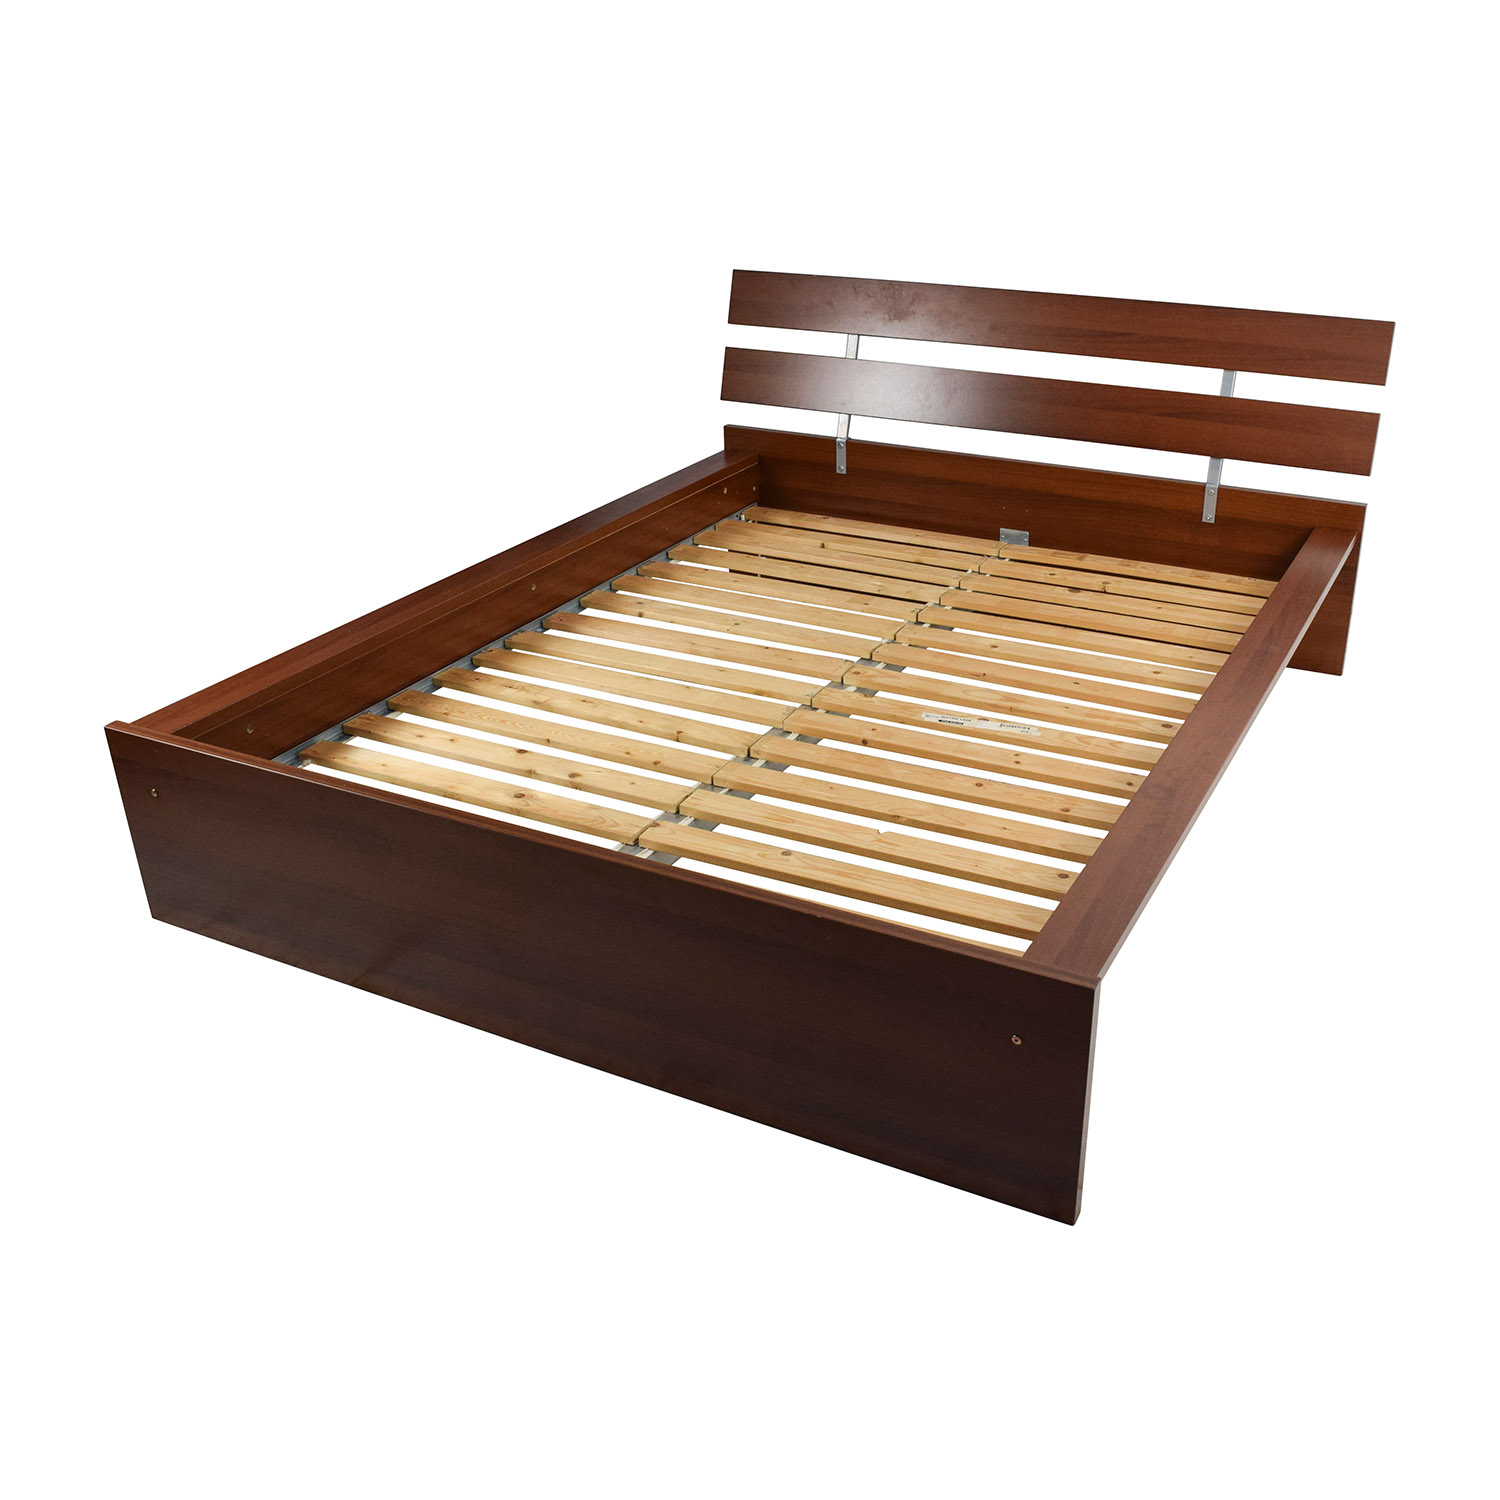 Ikea queen beds in cool ikea sultan queen bed frame ikea How to buy a bed